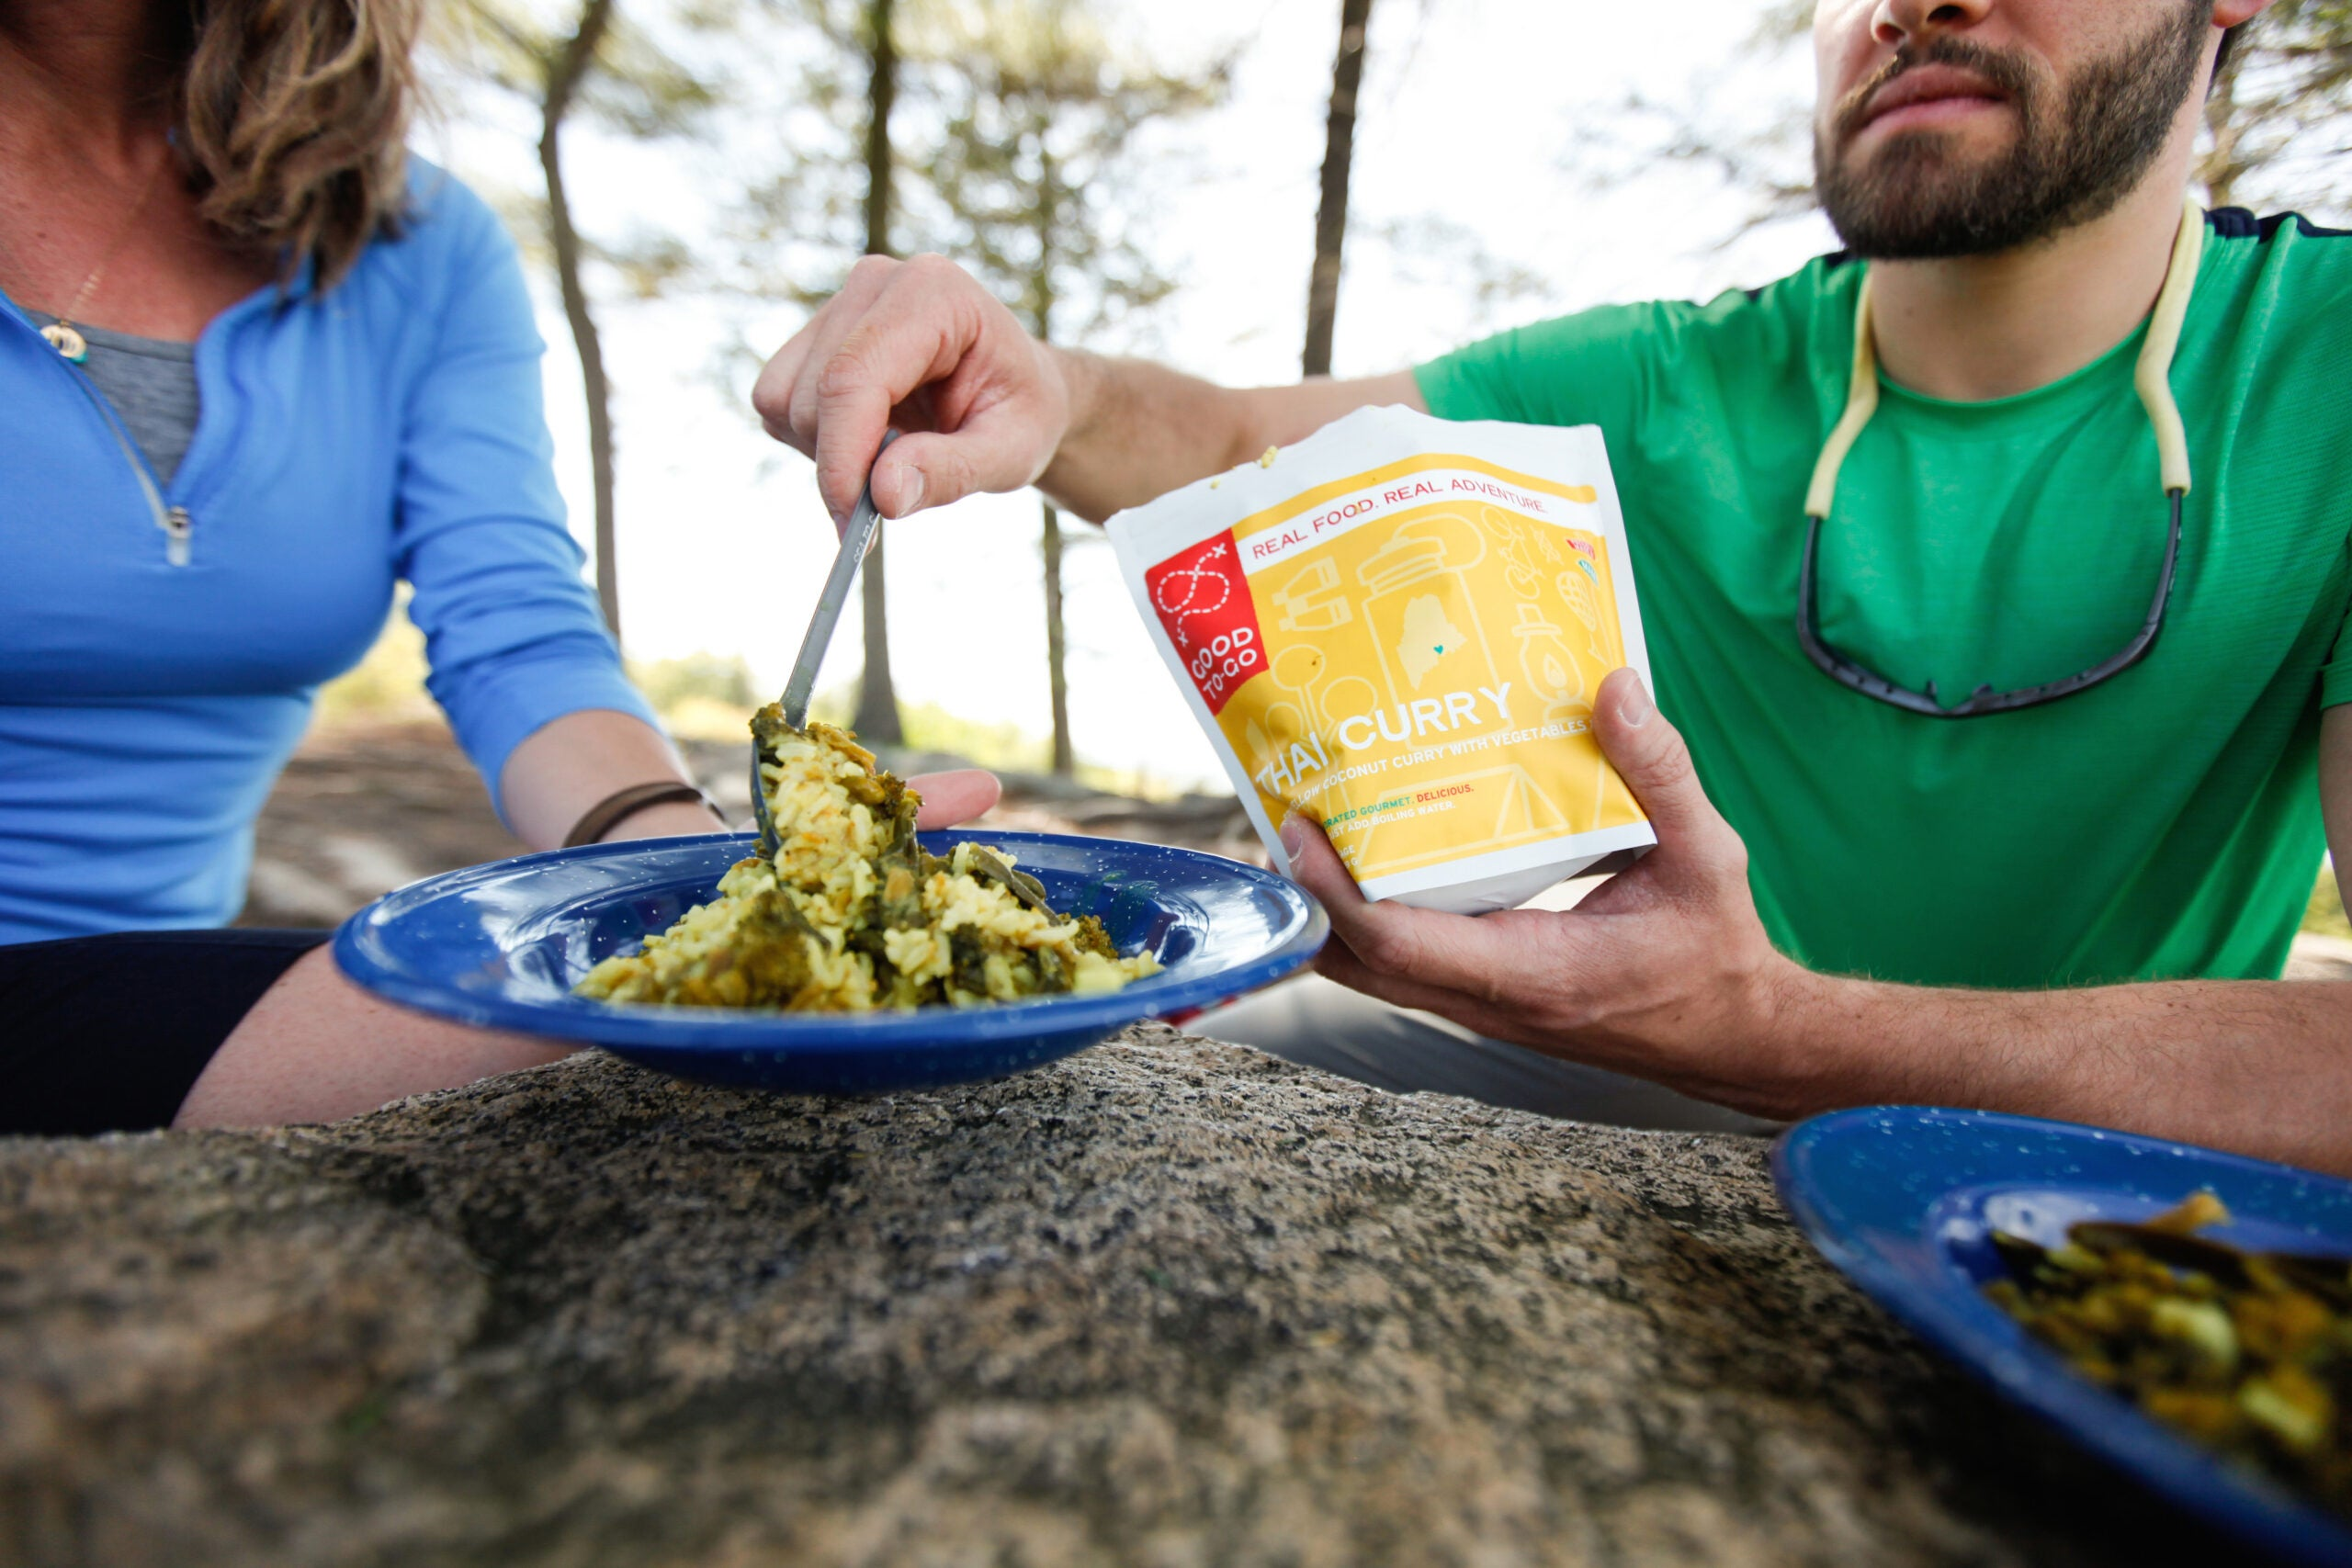 Backcountry Food Review: Good To-Go Dehydrated Meals